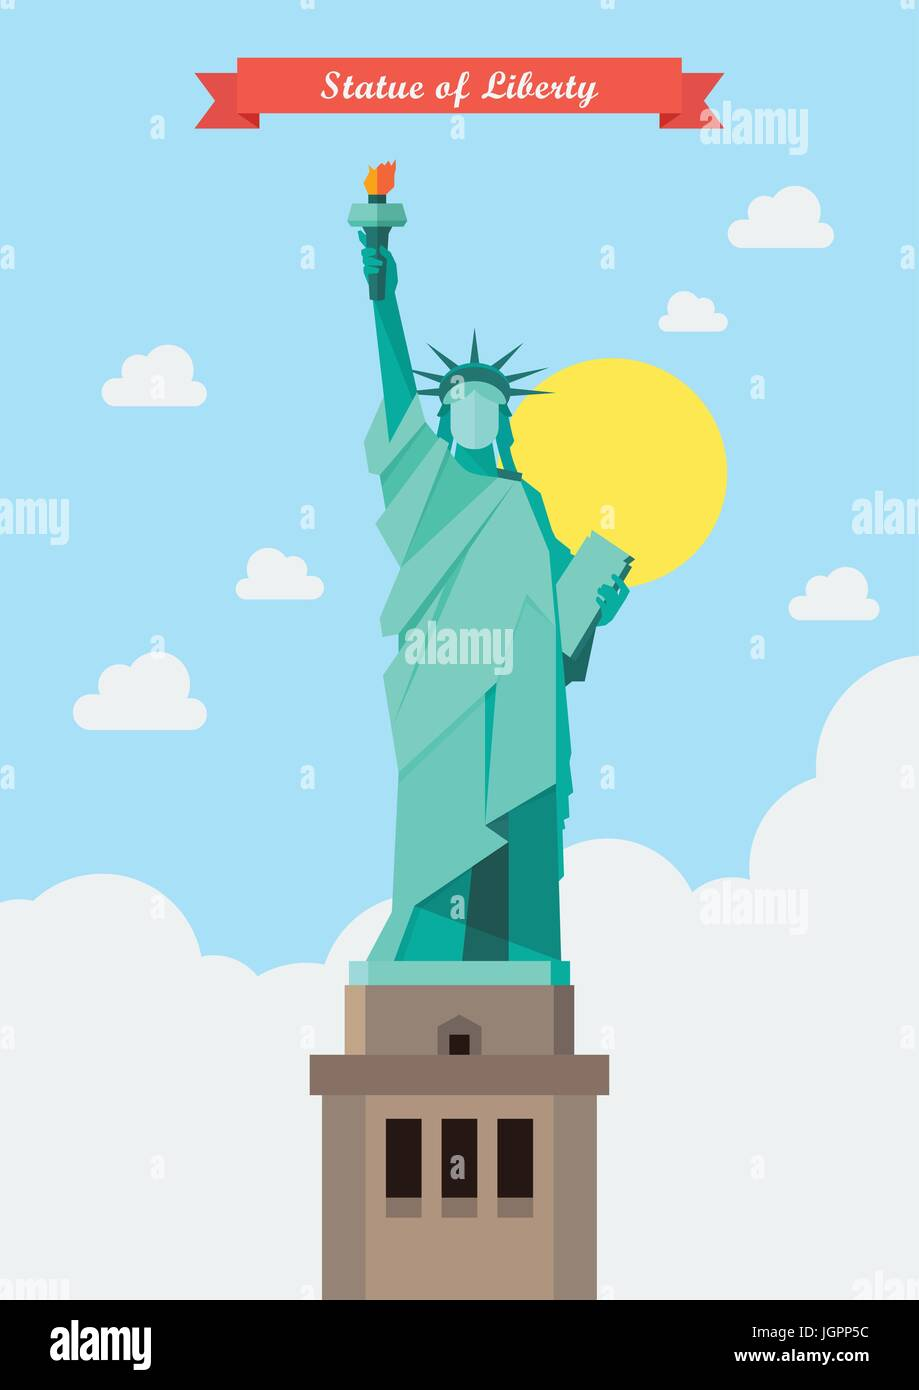 Statue of liberty illustration. Flat style design Stock Vector